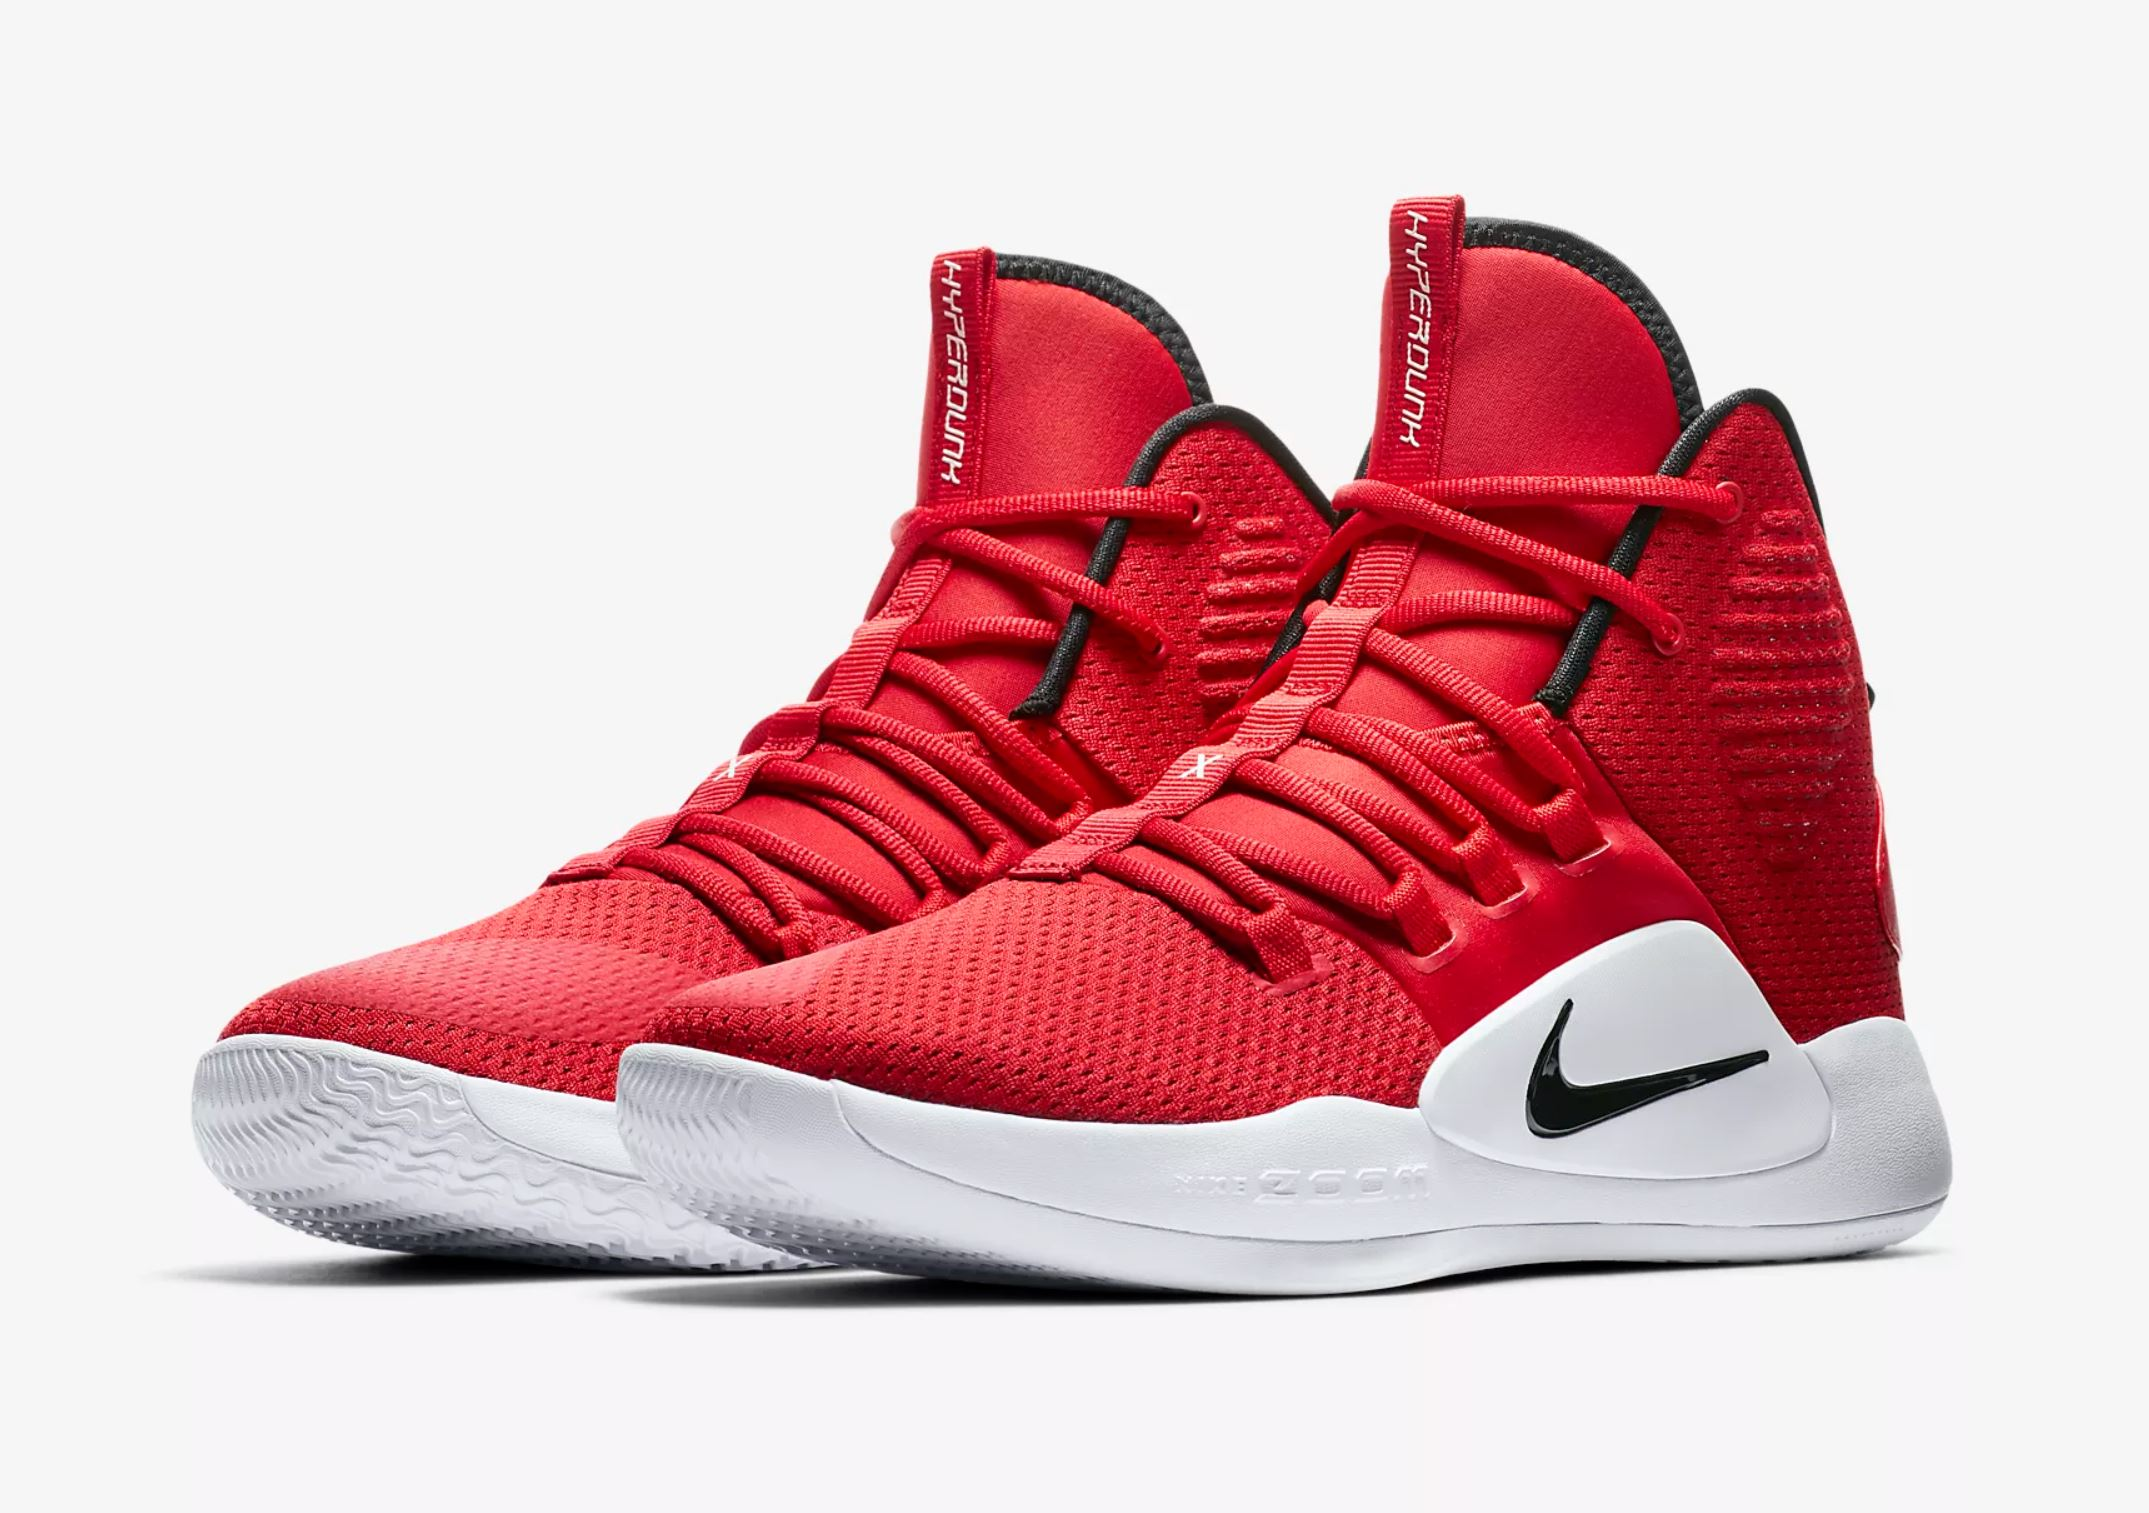 83db3b8d2d5f The Nike Hyperdunk X TB Has Silently Released - WearTesters